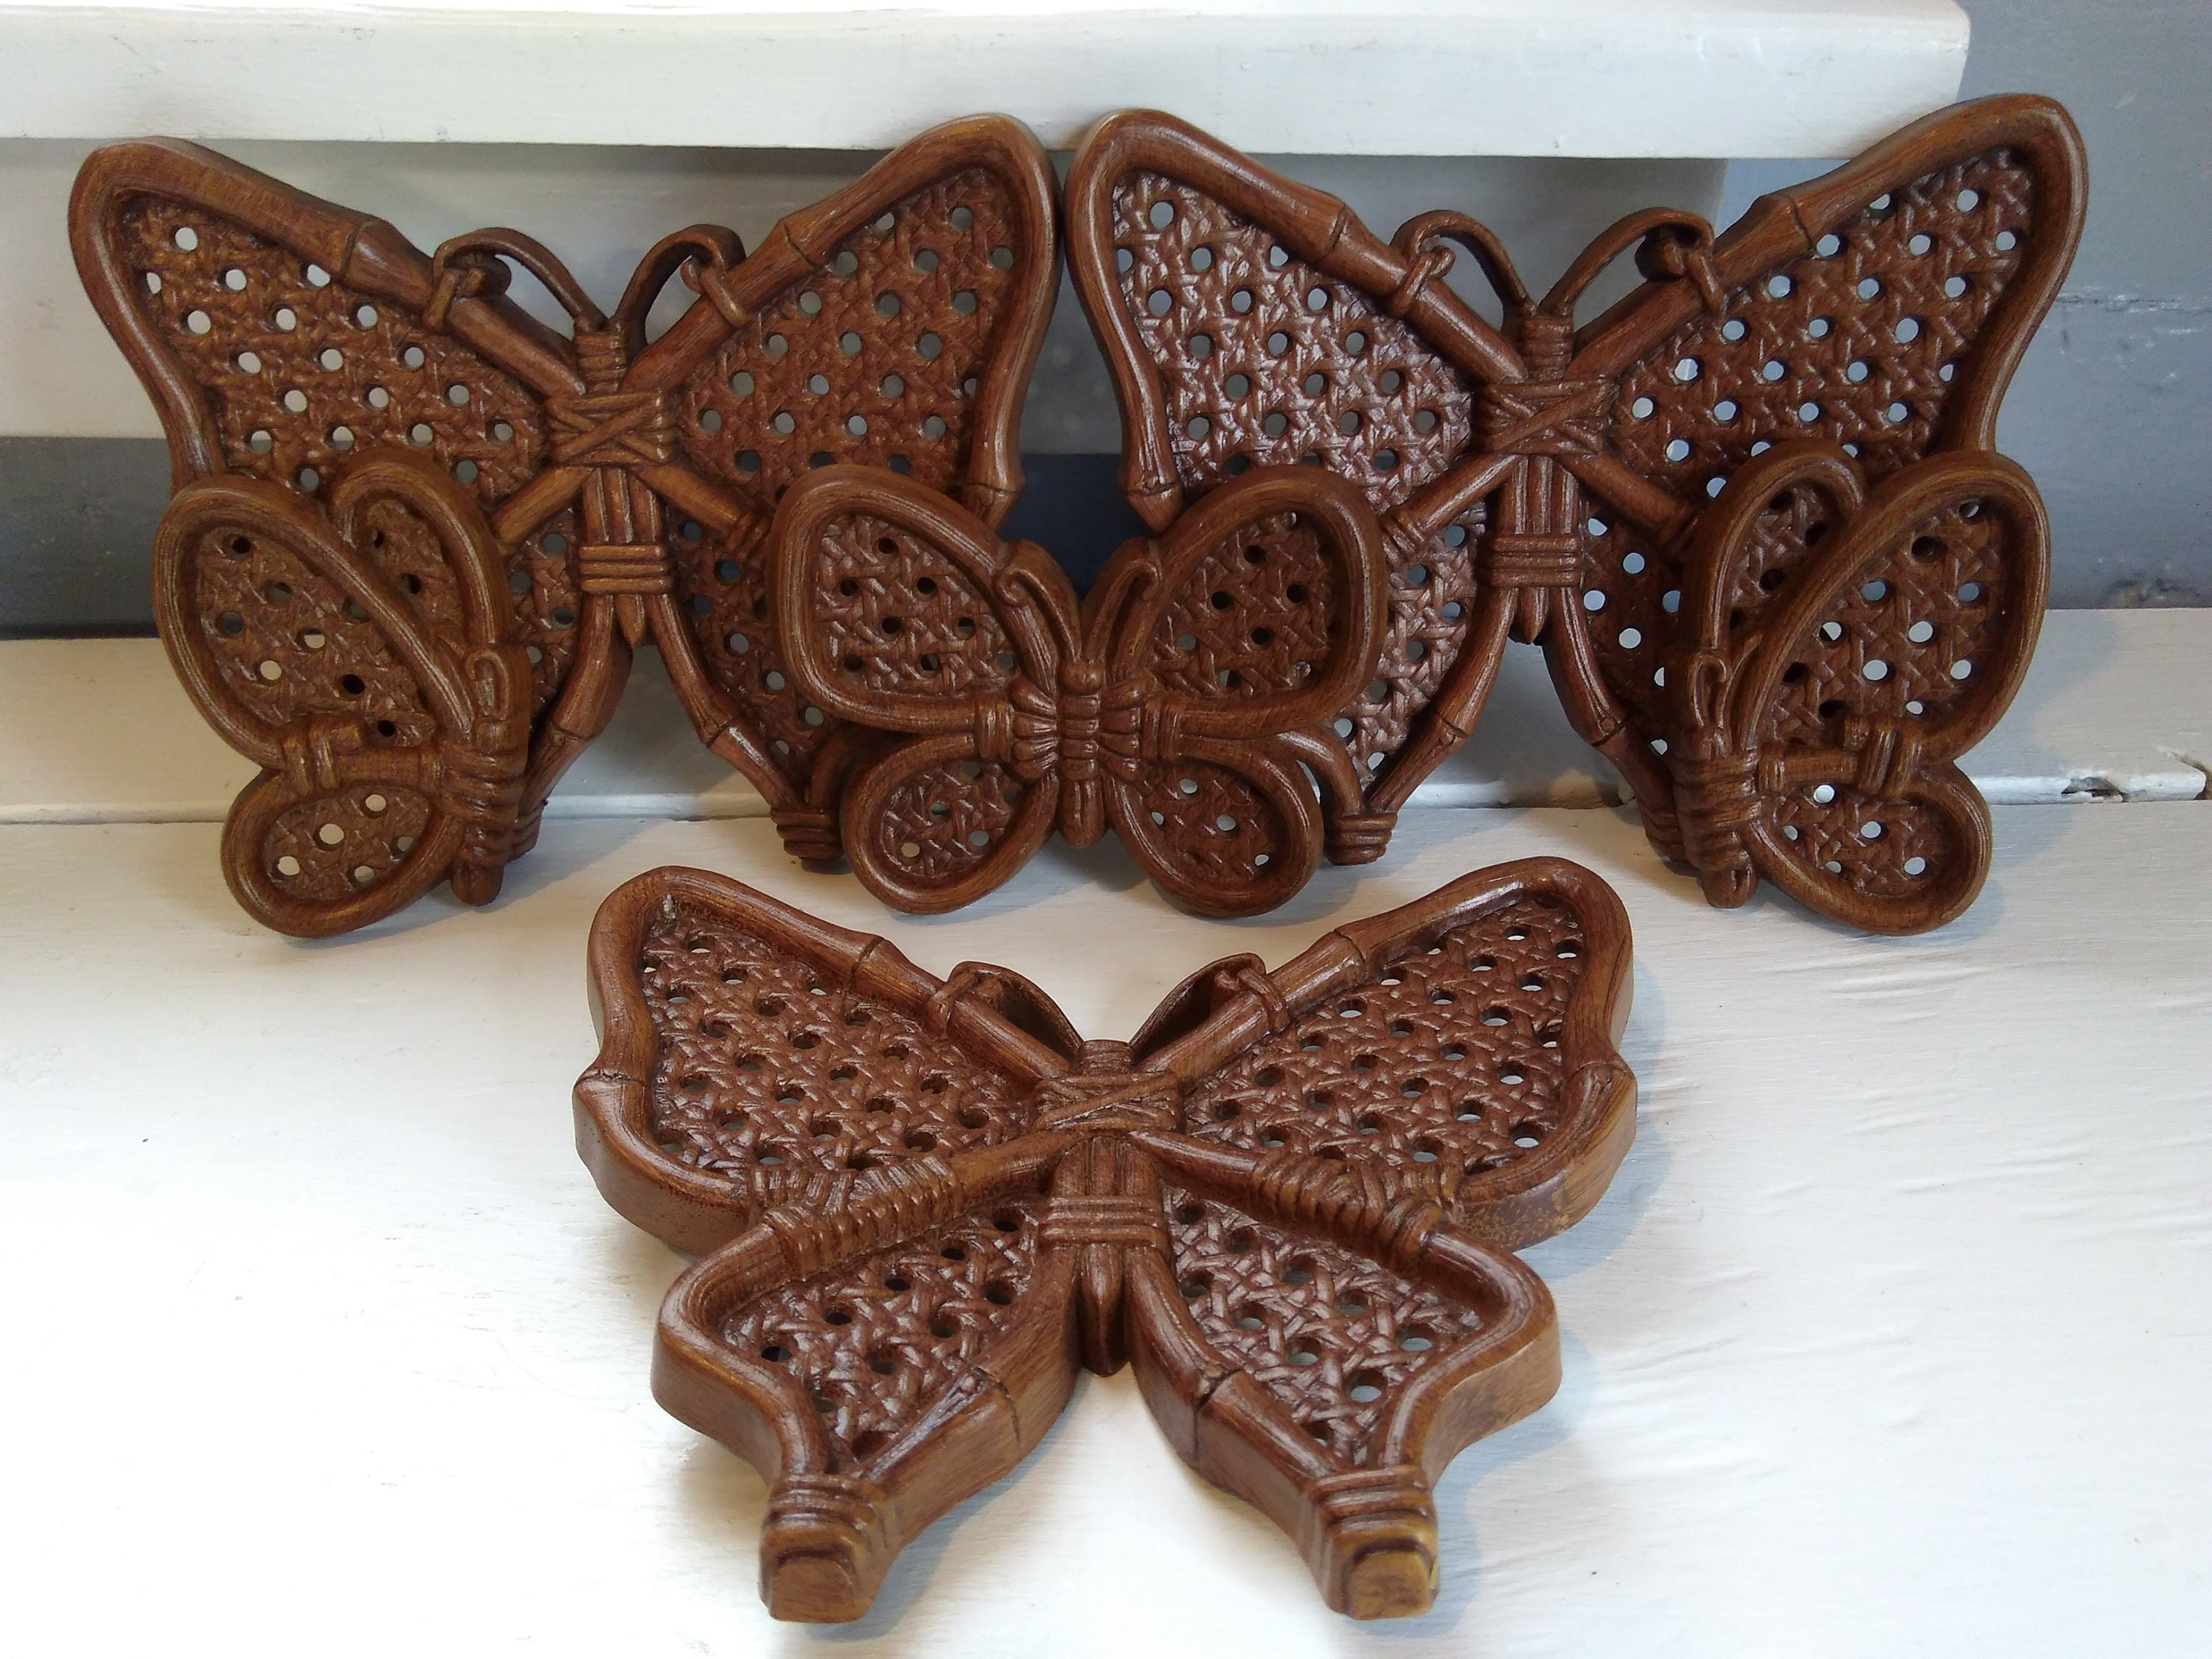 70s Retro Butterfly Wall Decor Set Of 6 Burwood Products Nursery Decor  Rhymeswithdaughter